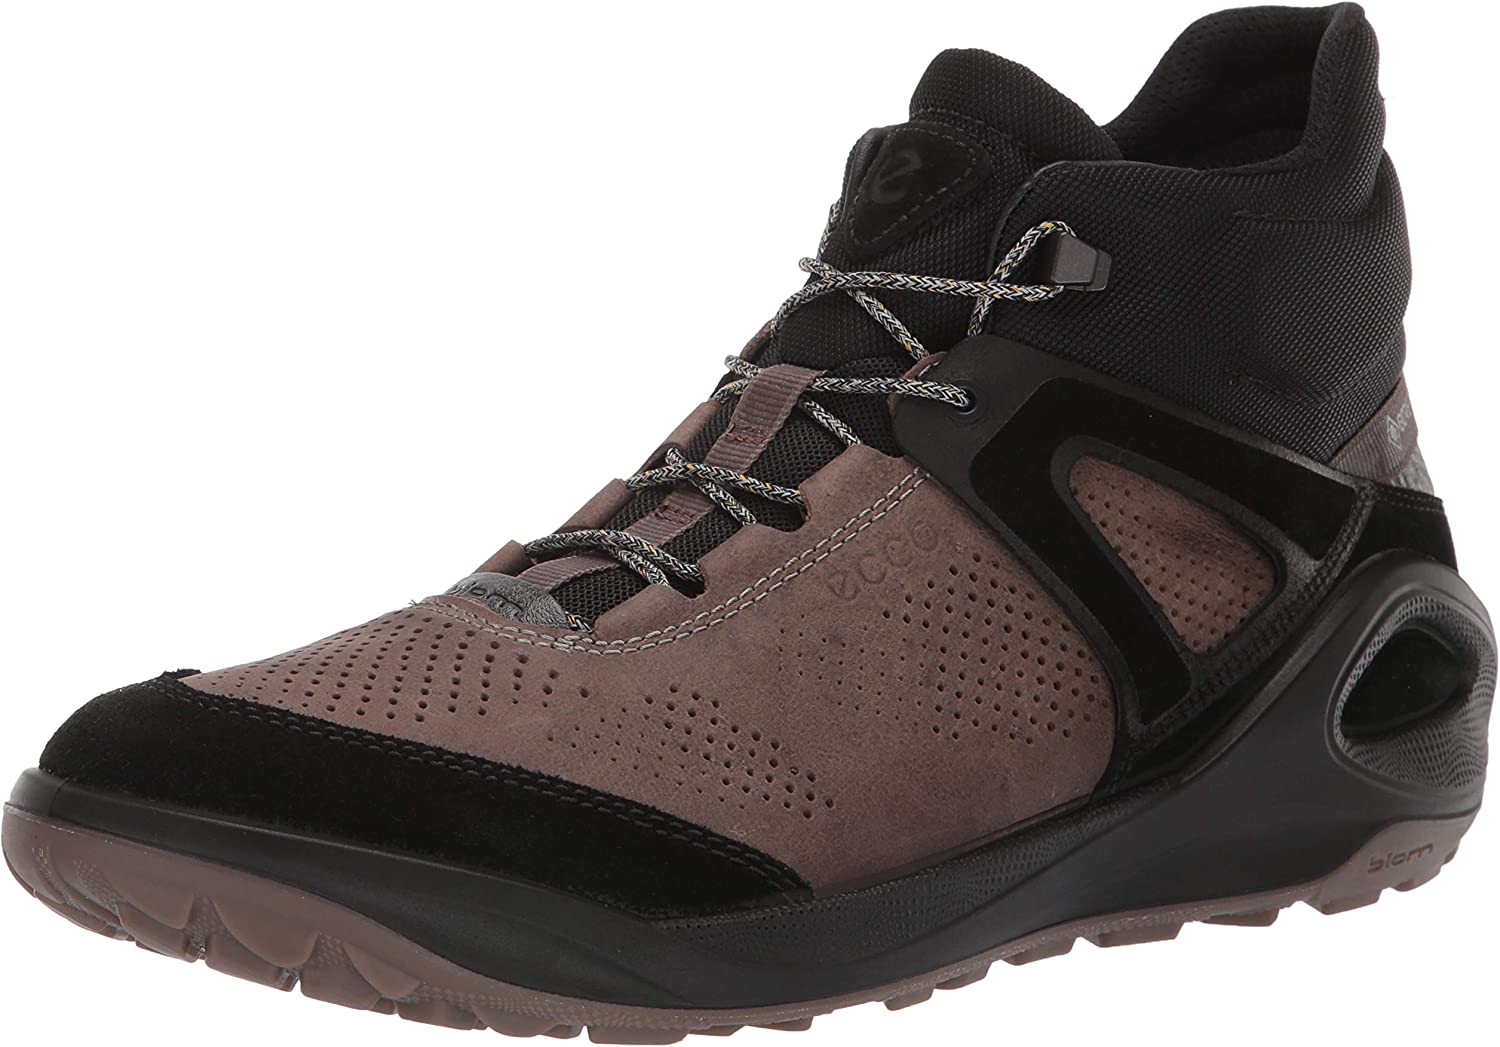 ECCO Men s Biom 2go-Gore-tex Waterproof, Outdoor Lifestyle, Multi-Sport, Hiking Ankle Boot